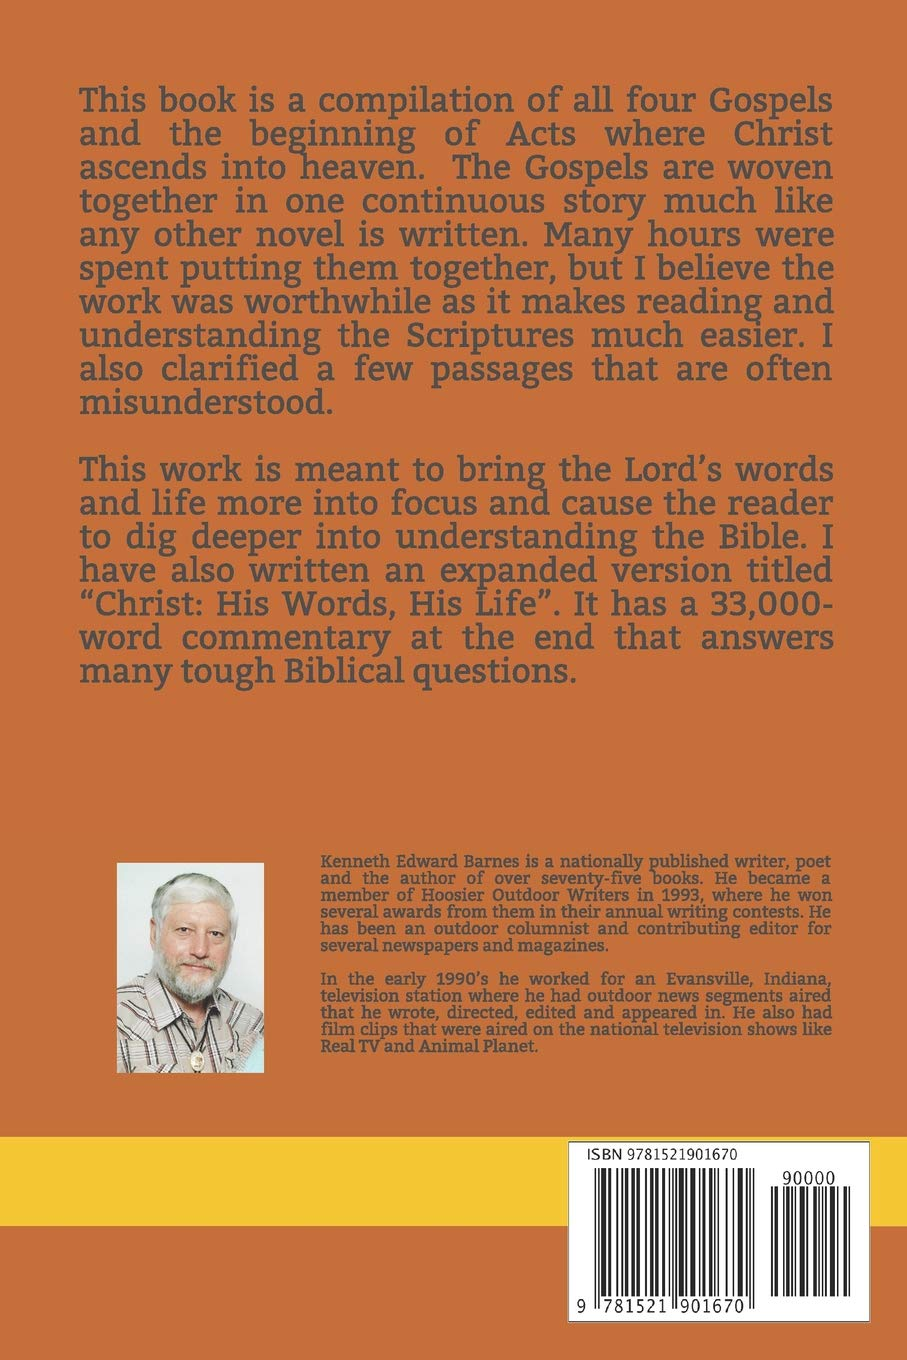 The Words and Life of JESUS: A Compilation of the Gospels: Matthew